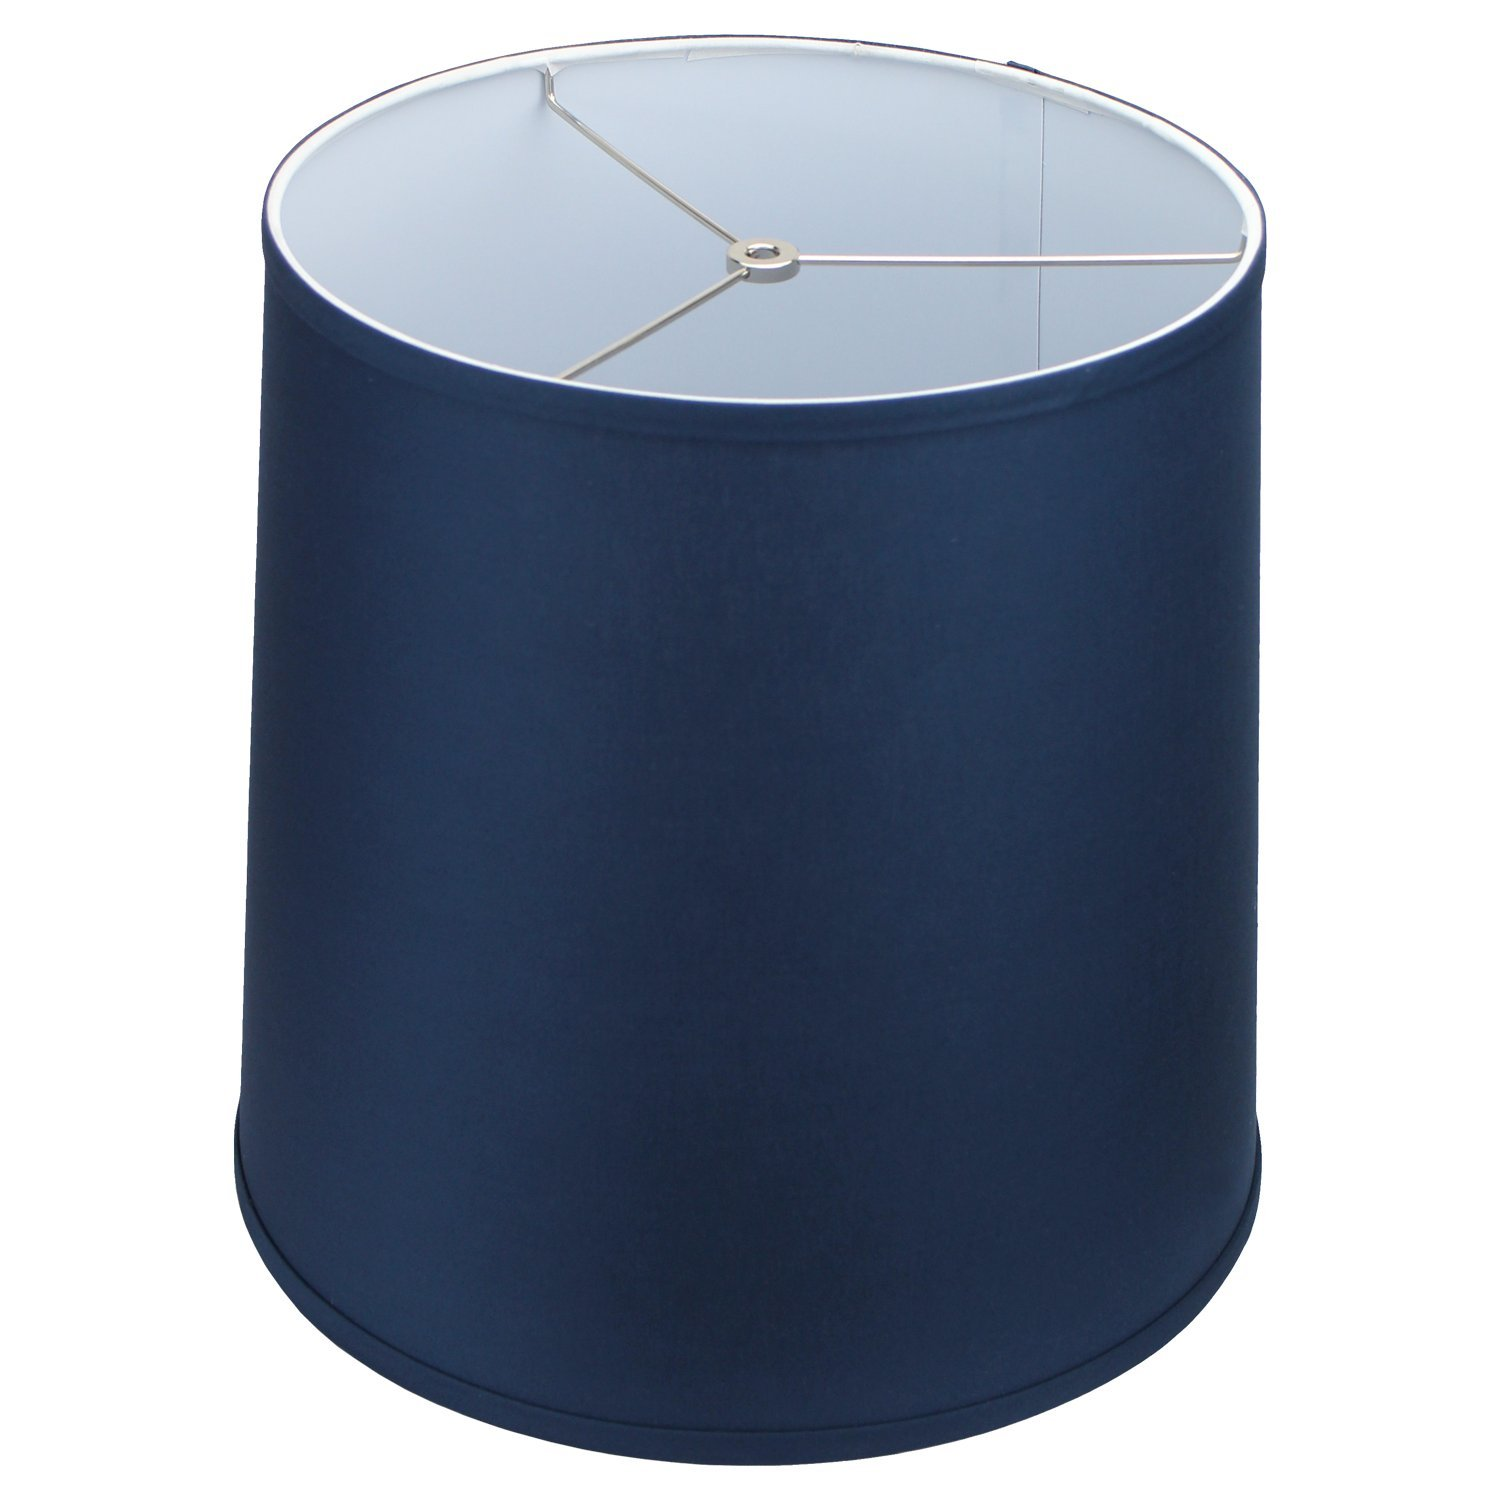 FenchelShades.com Lampshade 13'' Top Diameter x 15'' Bottom Diameter x 15'' Slant Height with Washer (Spider) Attachment for Lamps with a Harp (Navy Blue)